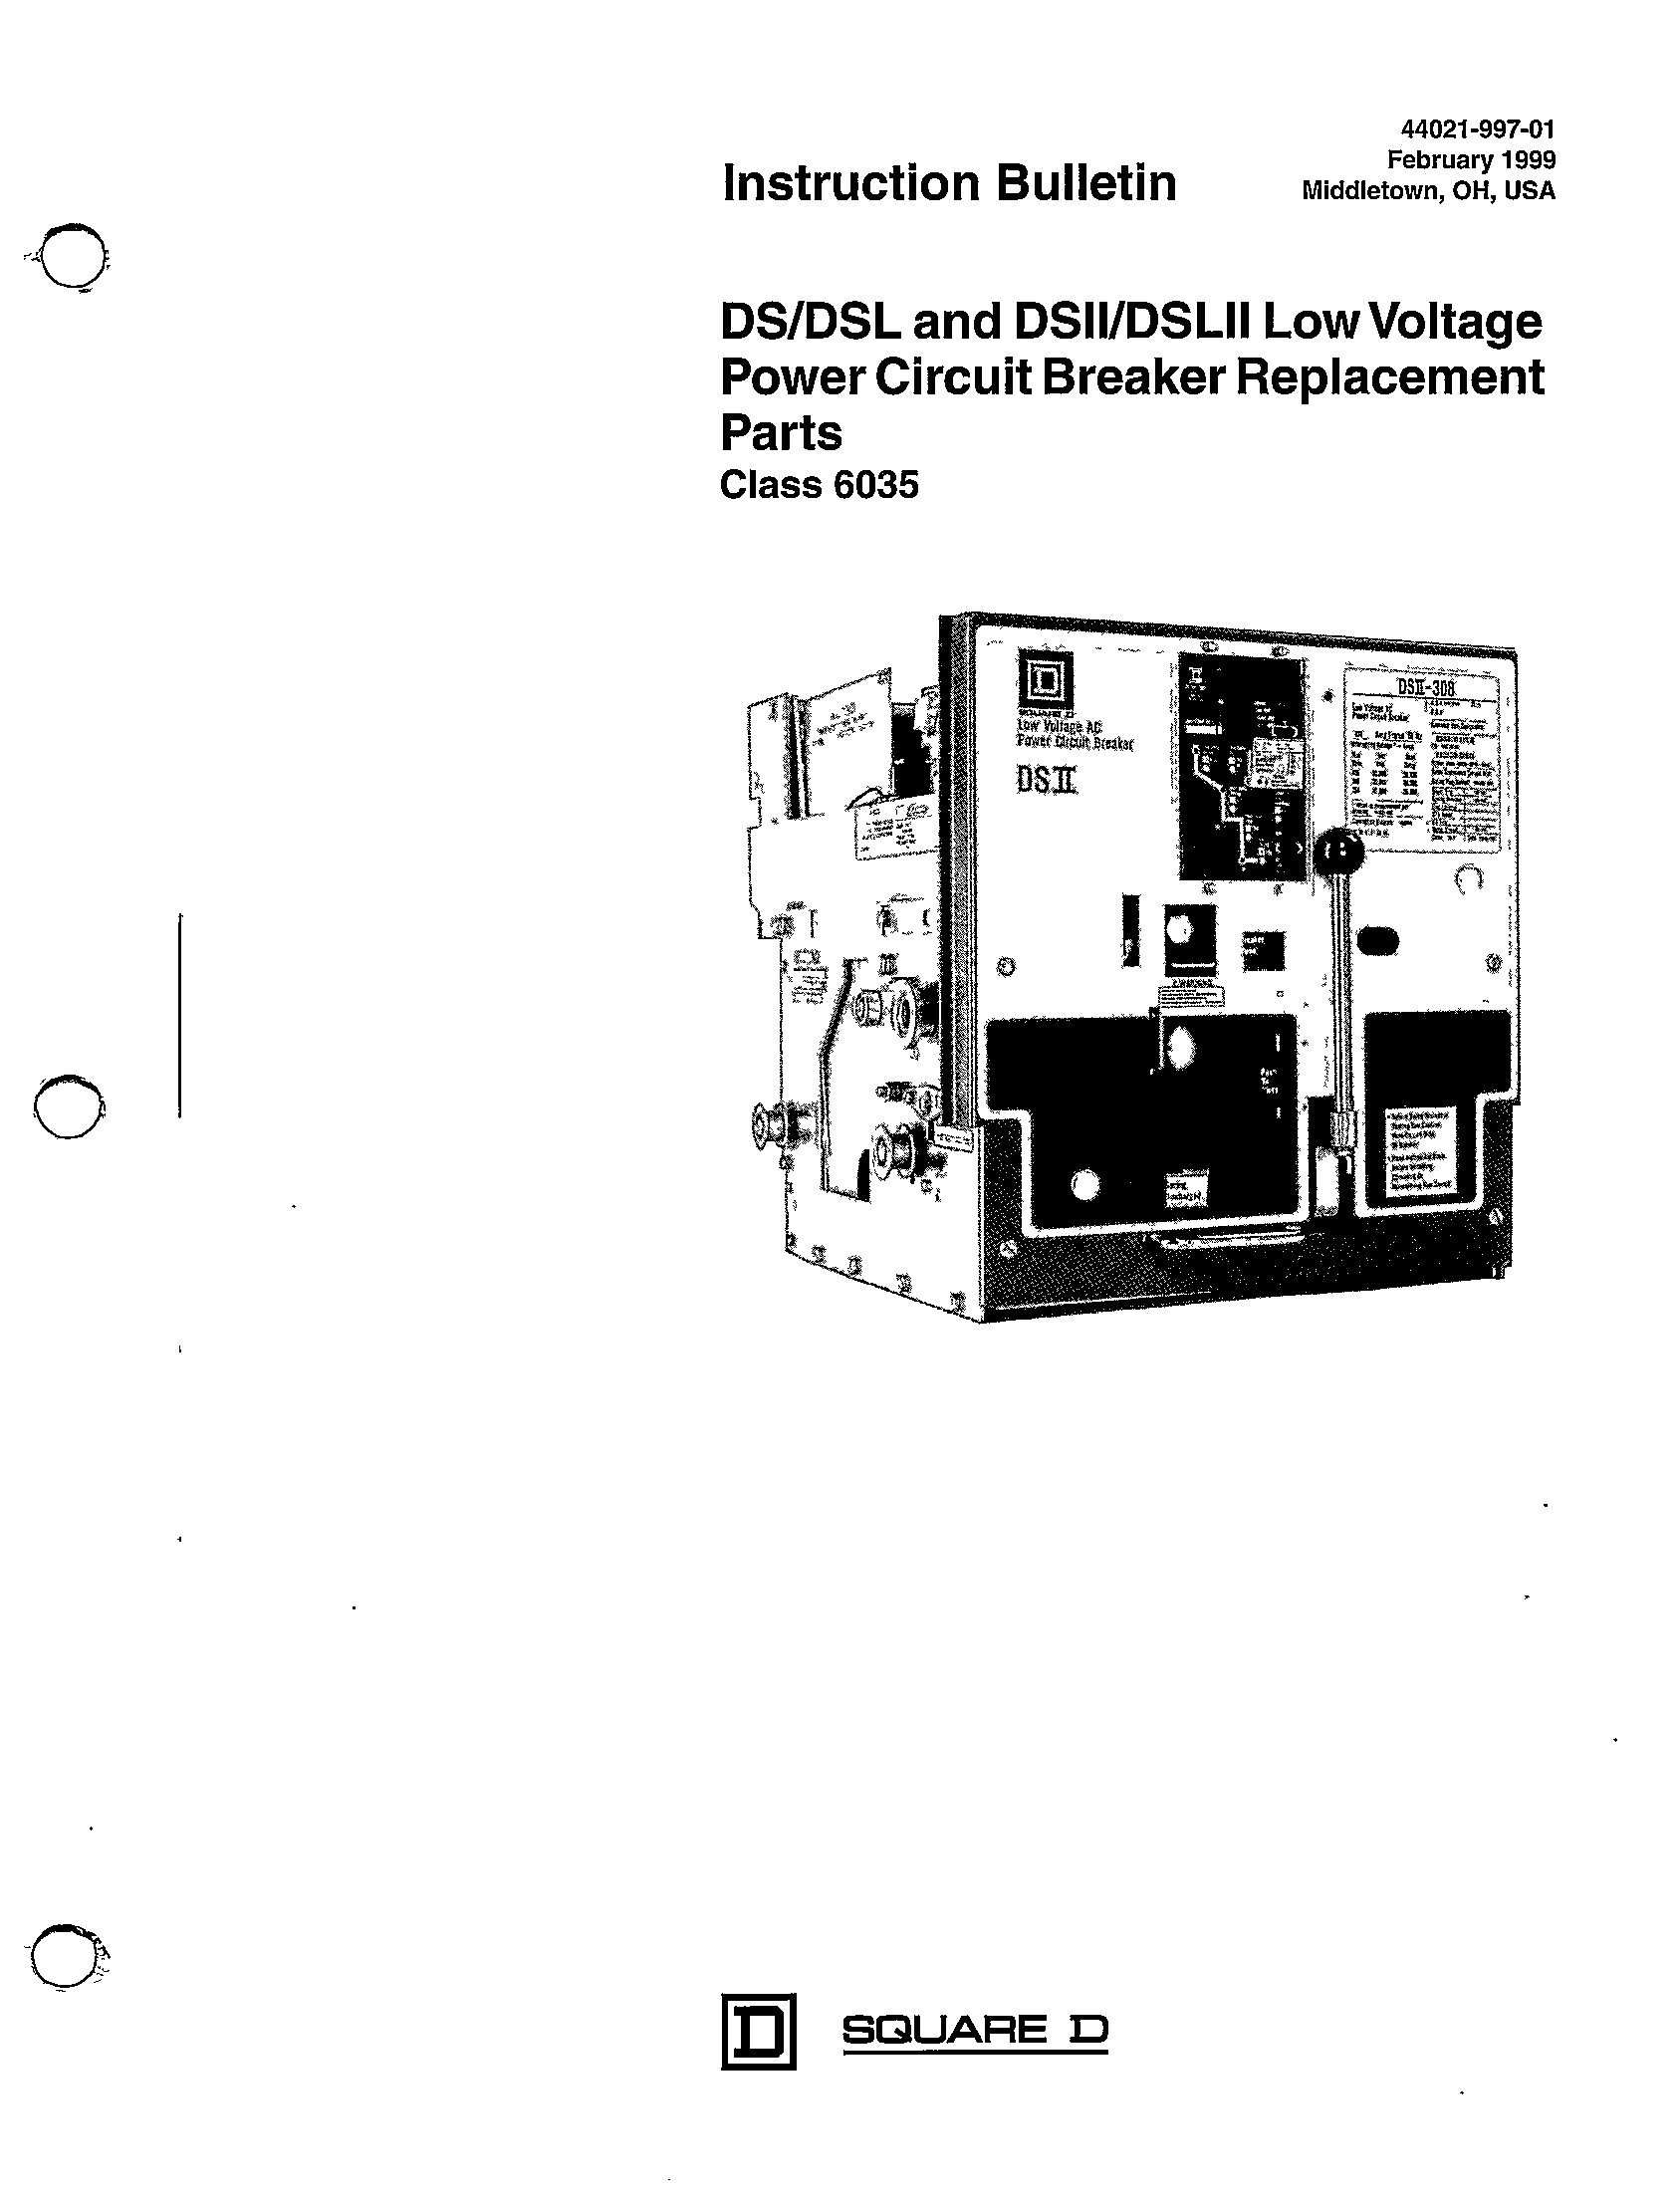 Abb Ai810 Wiring Diagram Sle. Abb Ai810 Wiring Diagram 997 01 Ds Dsl And Dsii Dslii Low Vole Power Circuit. Wiring. Switchgear Electrical Wiring Schematic At Scoala.co